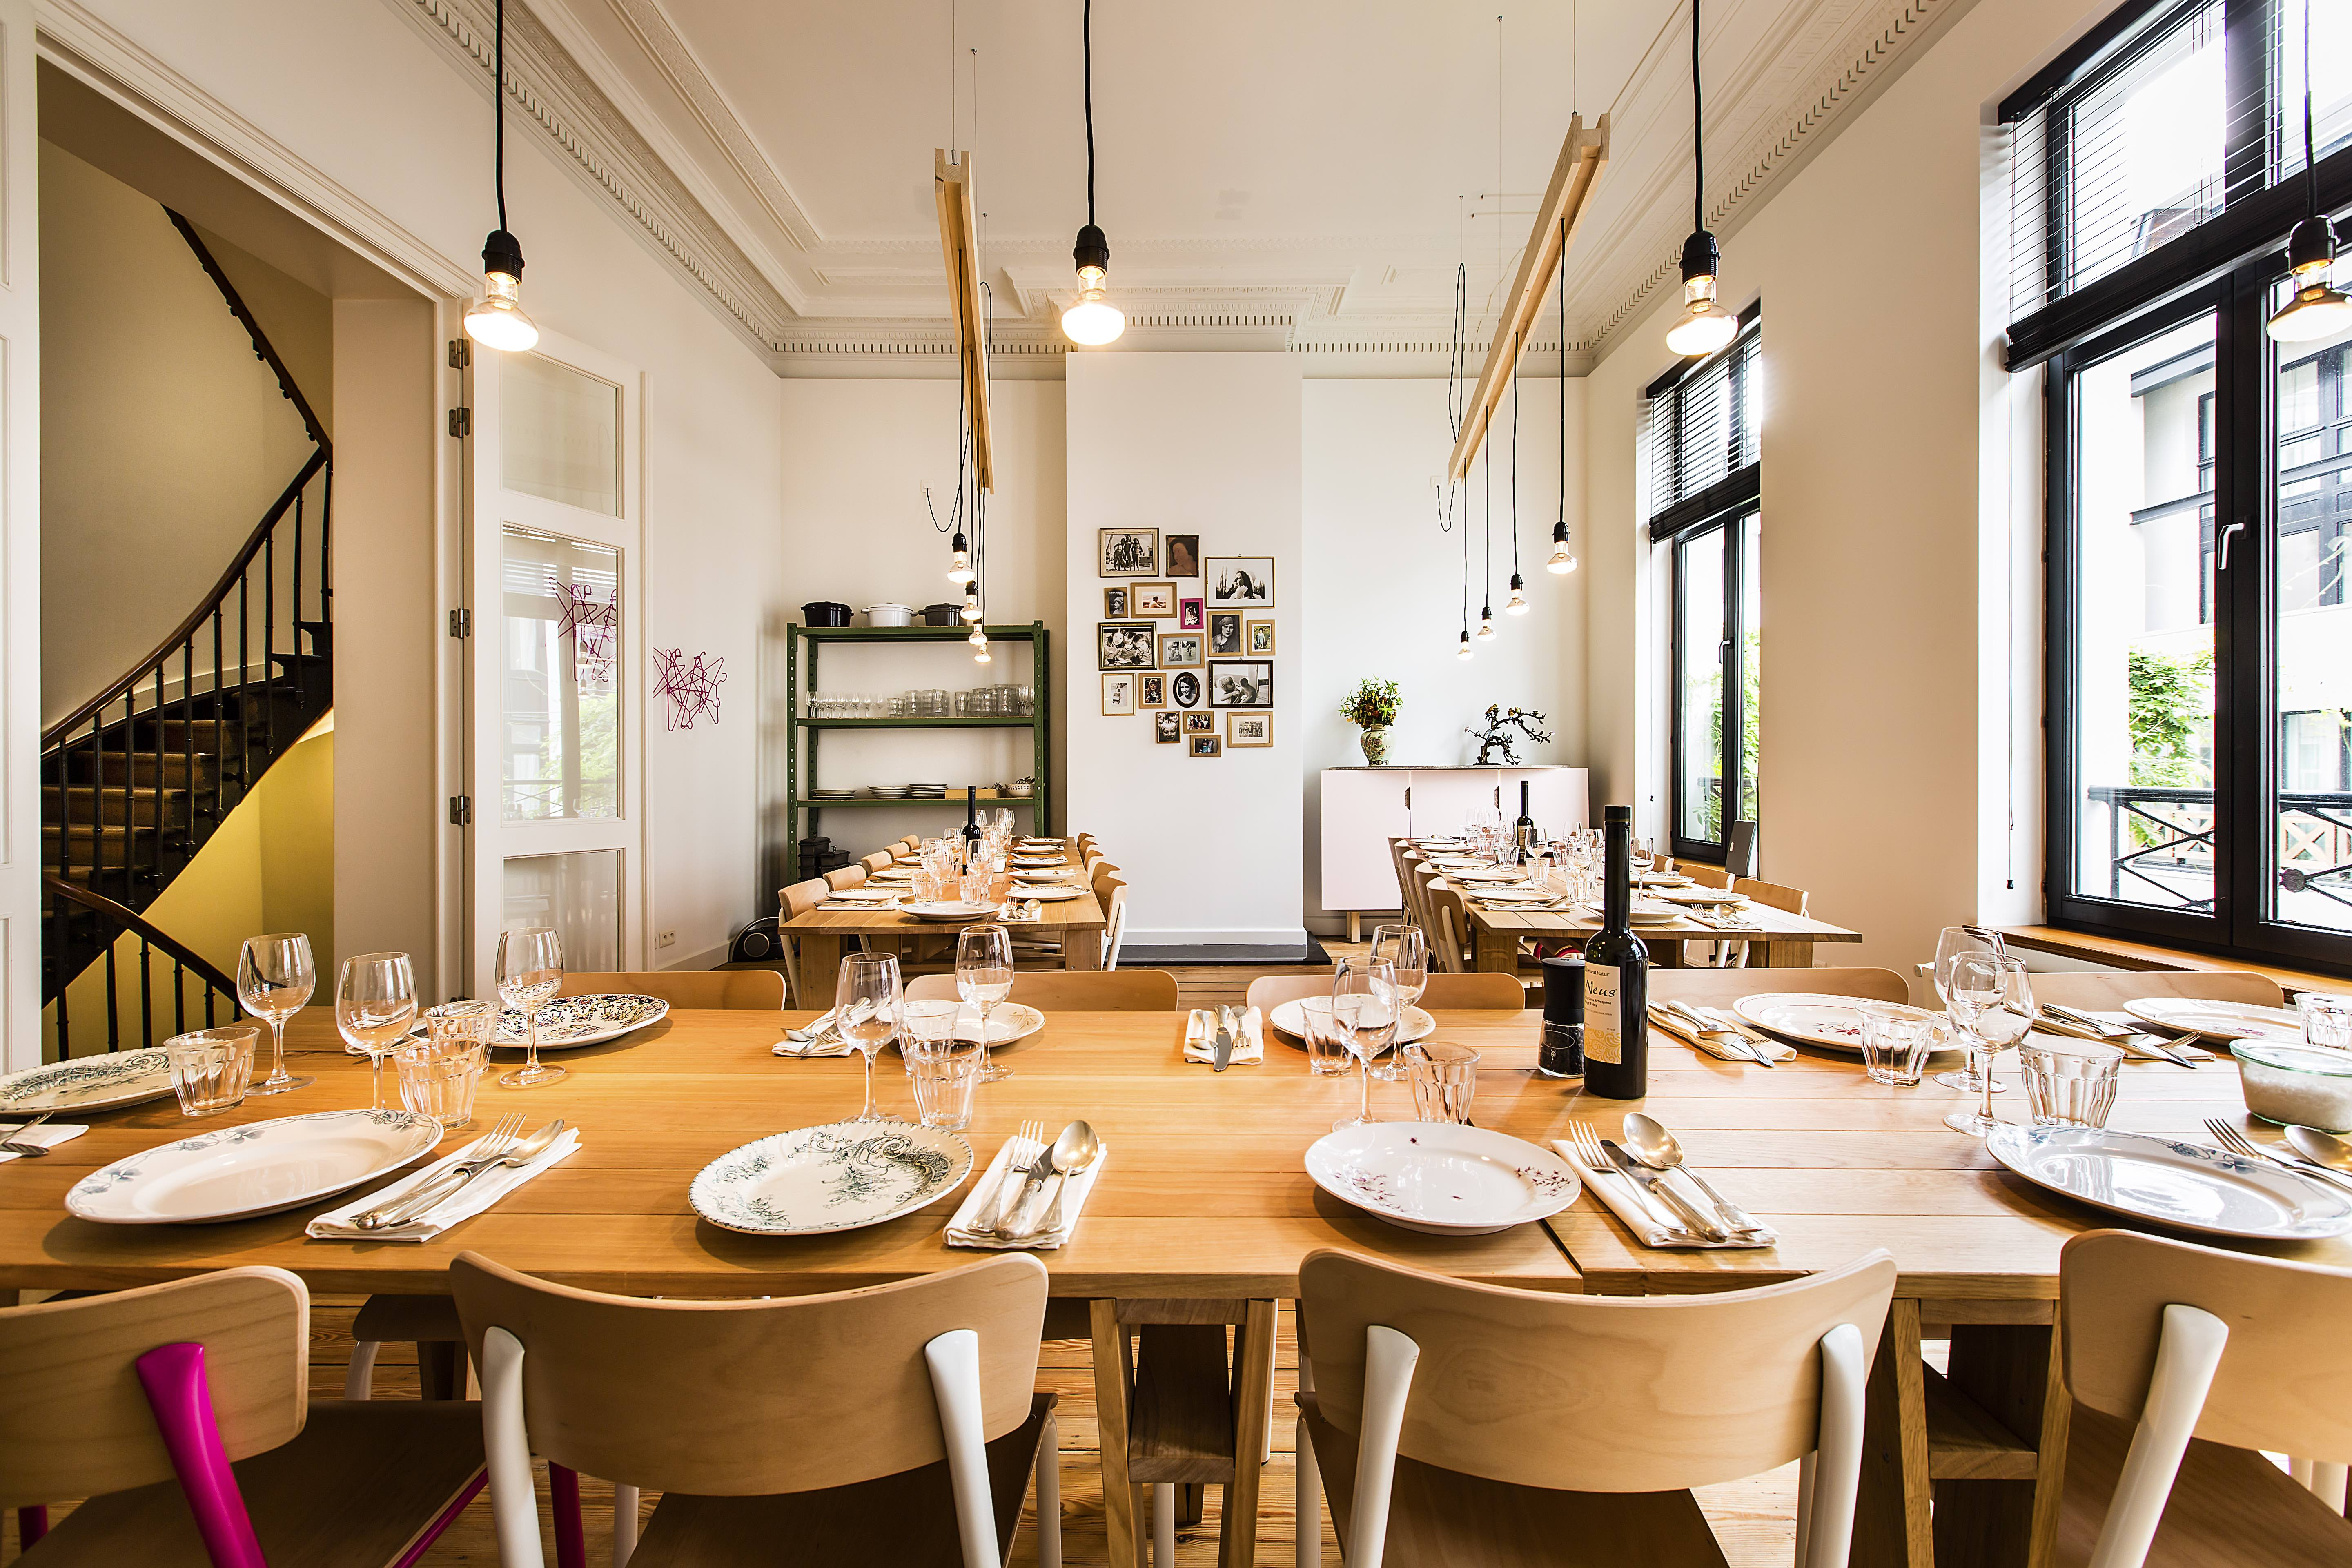 The dining area of Les Filles Plaisirs Culinaires   Courtesy of Les Filles Plaisirs Culinaires